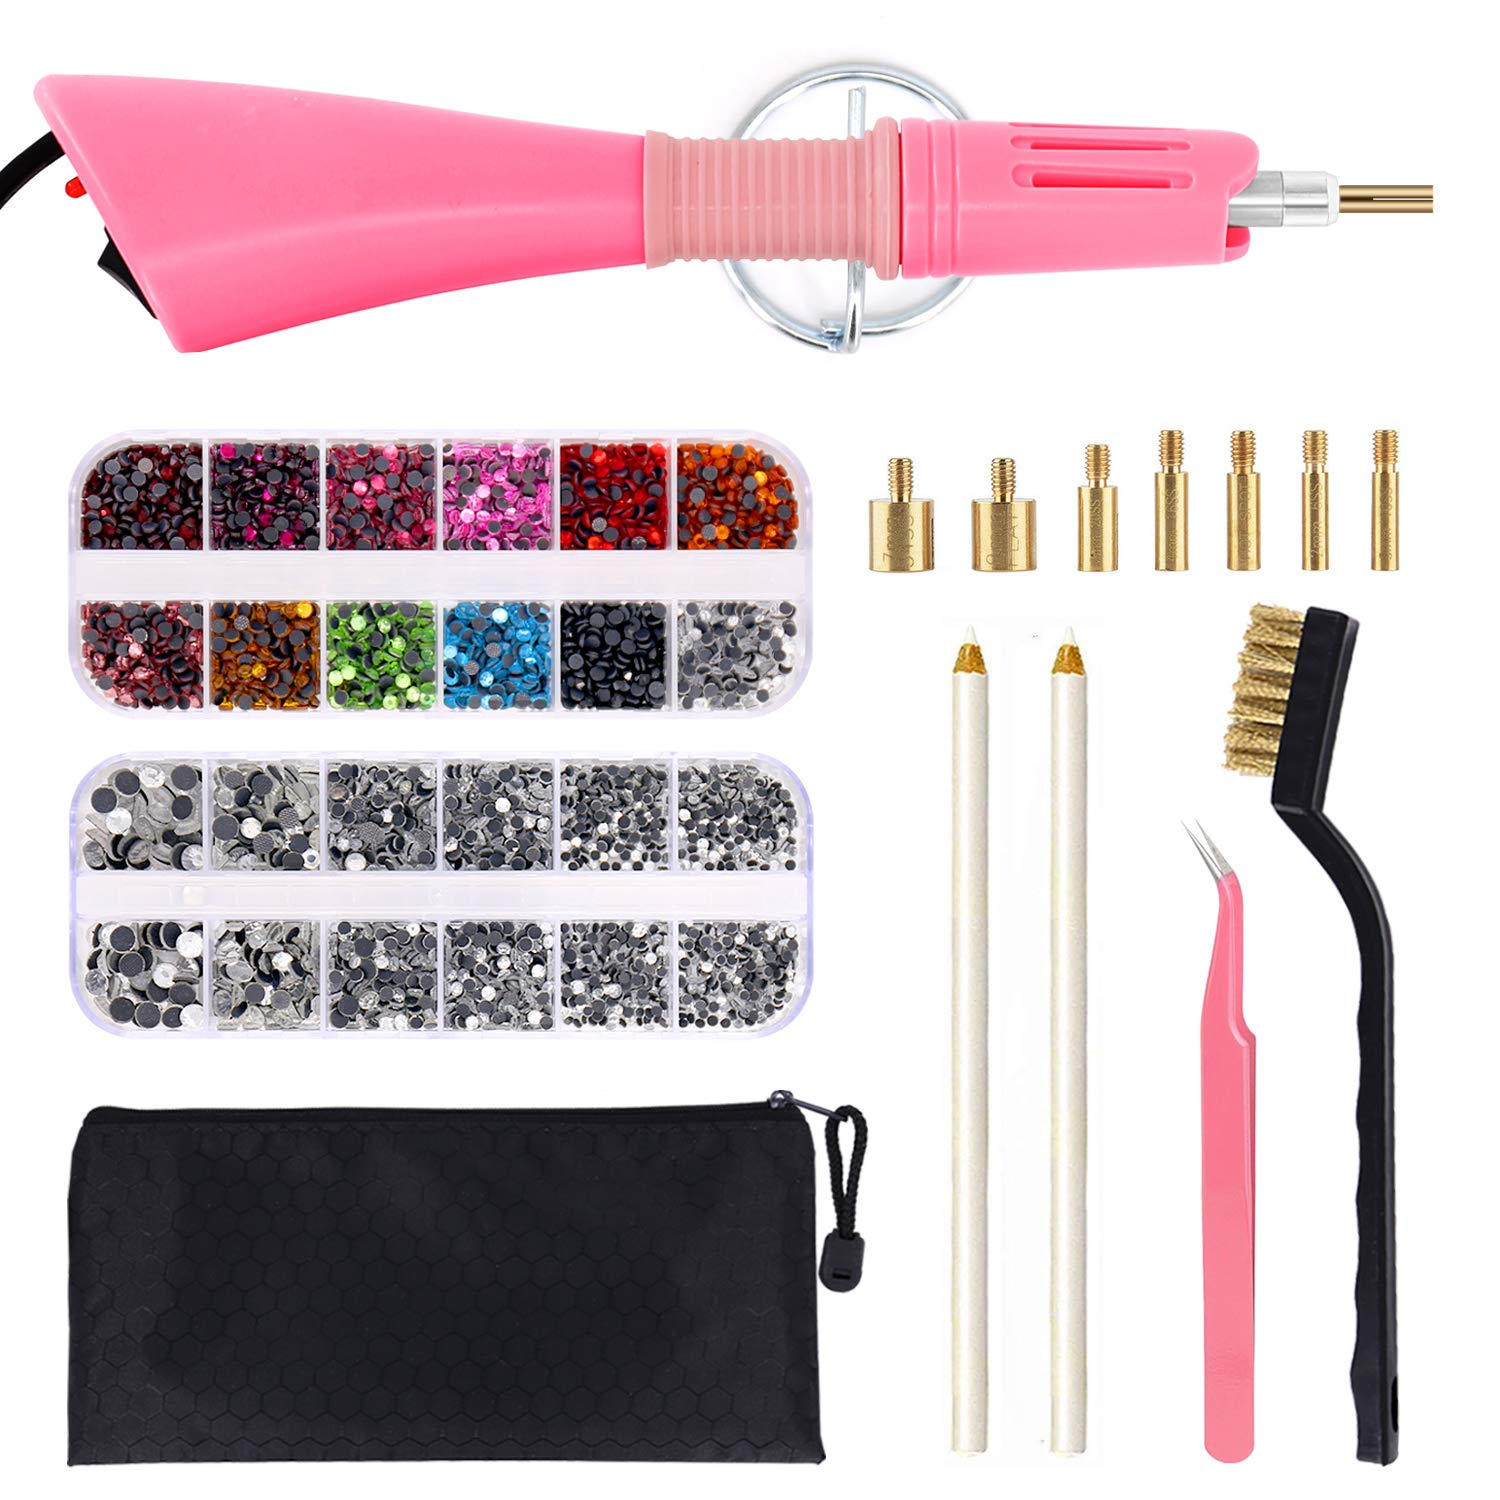 WAMTHUS Hotfix, DIY Applicator Wand Setter Tool 7 Different Sizes Tips, Tweezers & Brush Cleaning kit and 2 Pack Hot-Fix Crystal Rhinestones, Pink by WAMTHUS